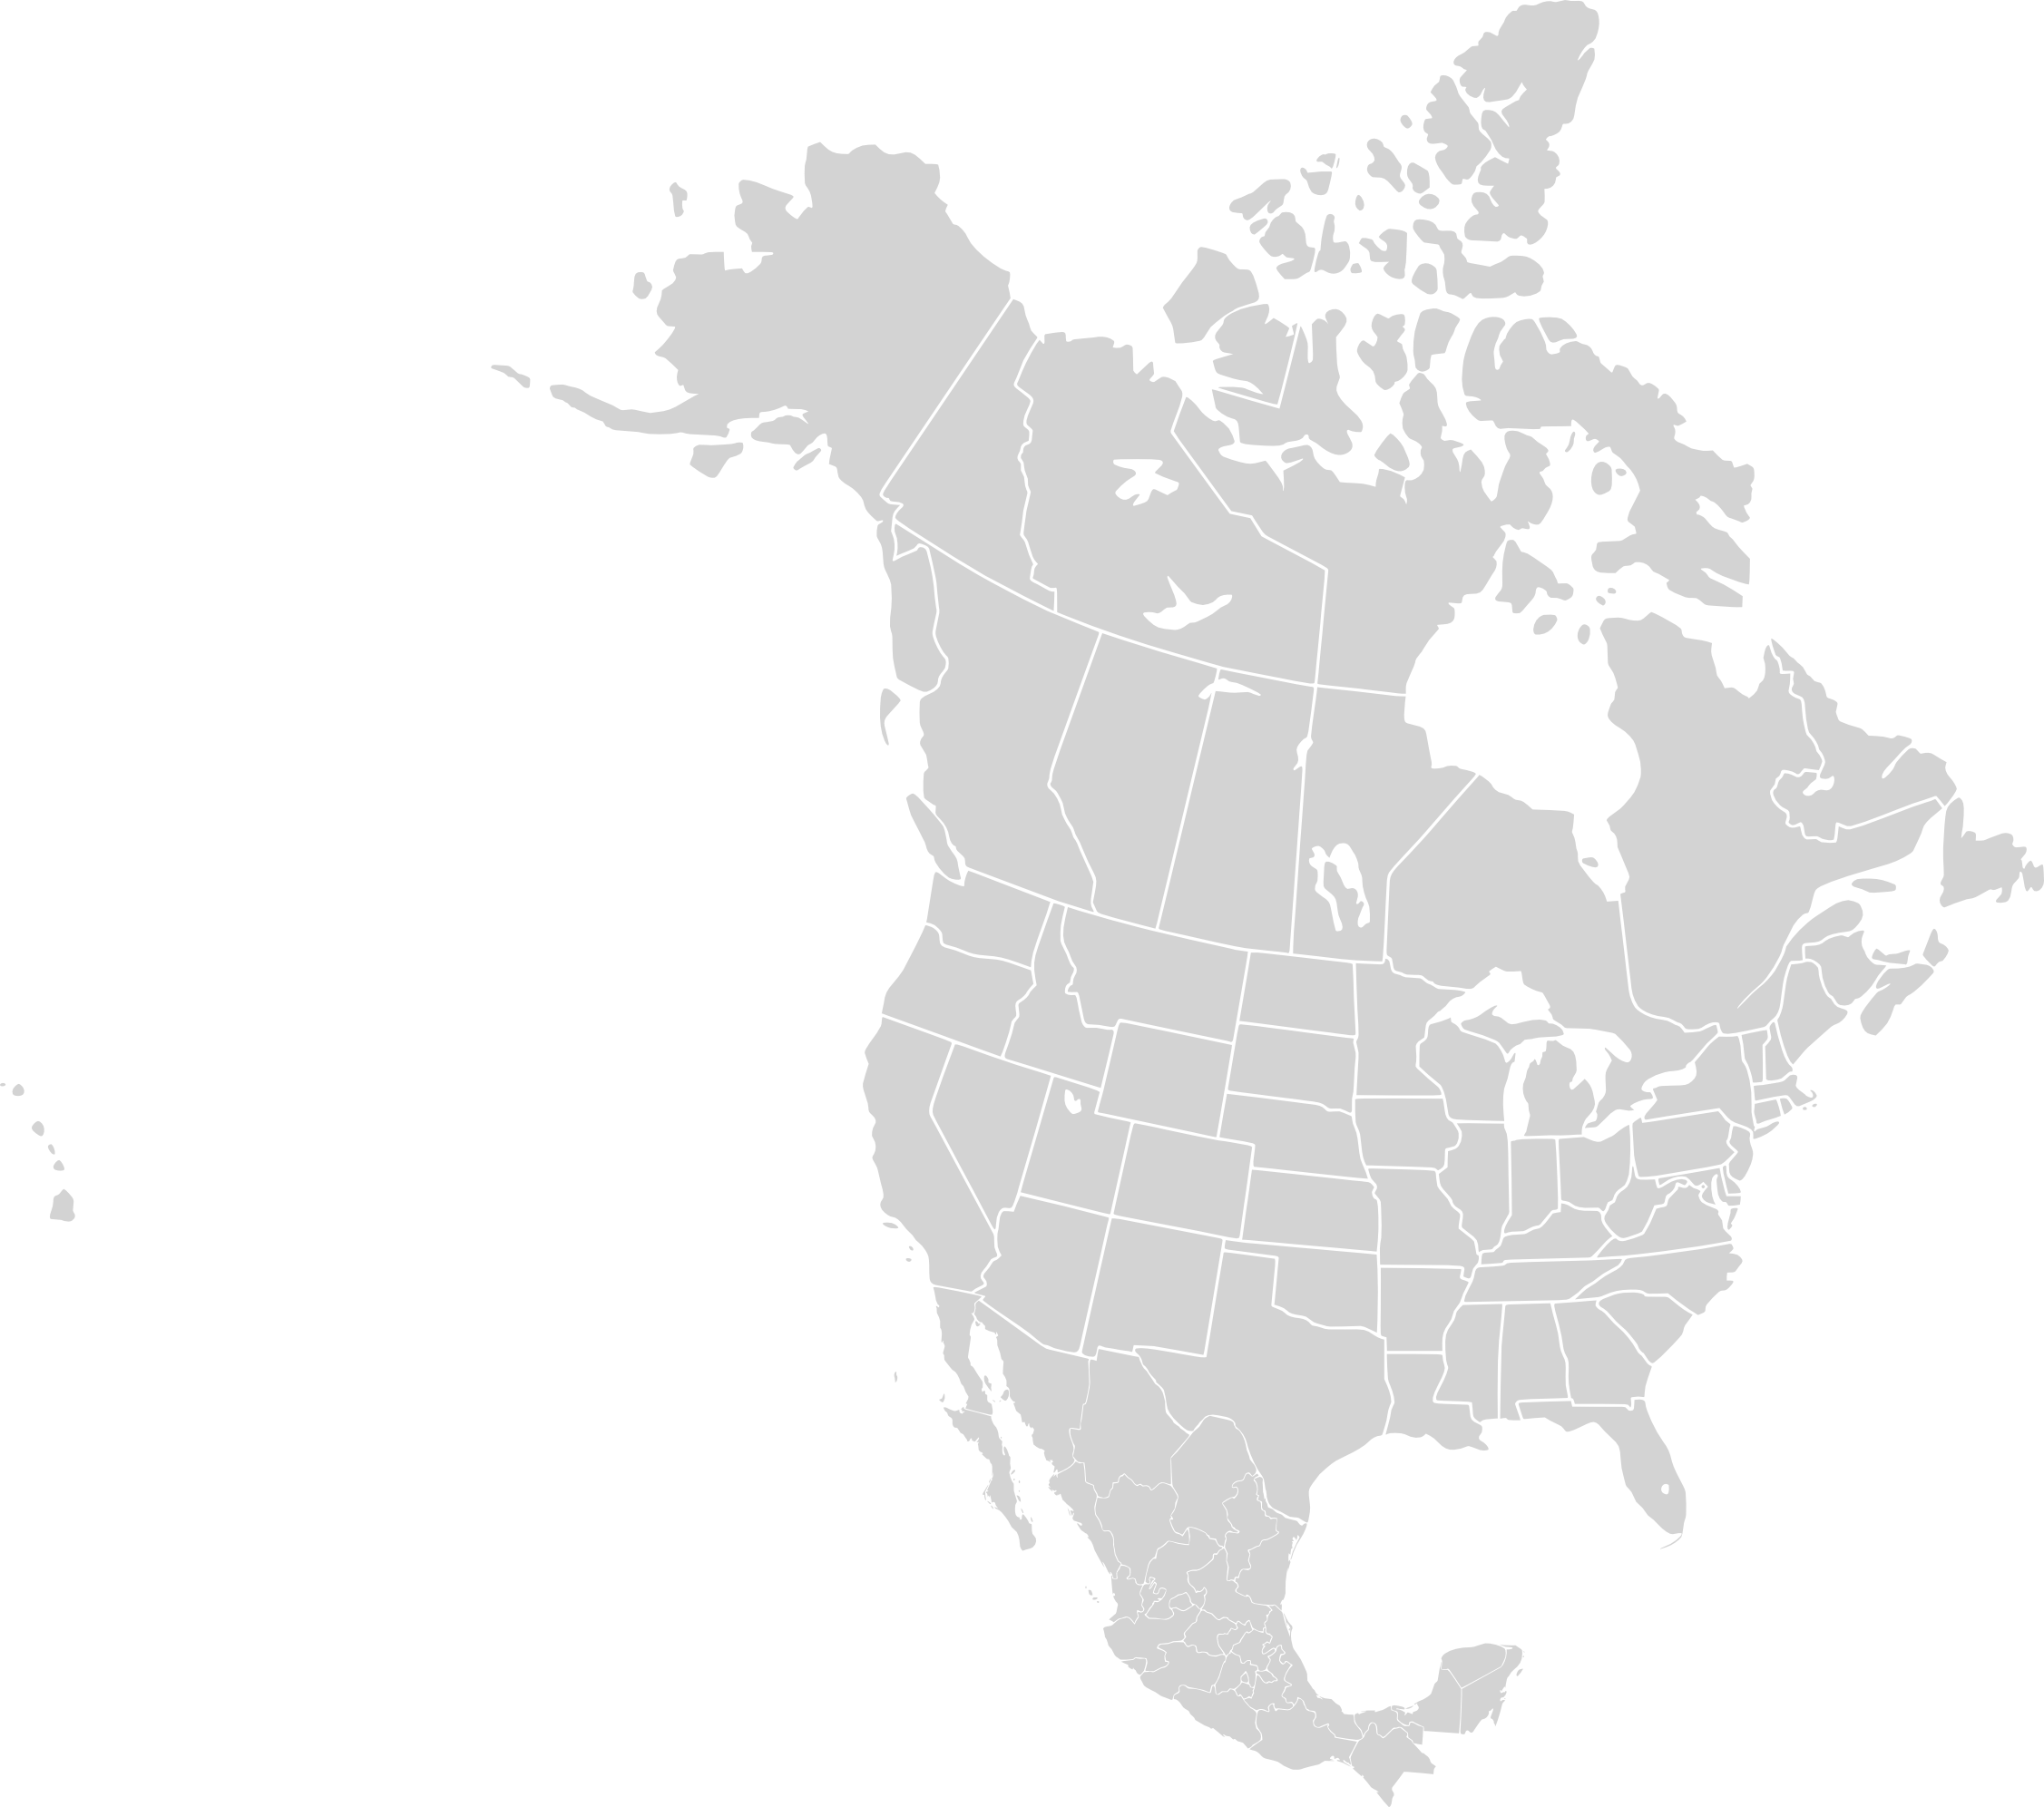 Free North America Map.File North America Blank Range Map Png Wikimedia Commons